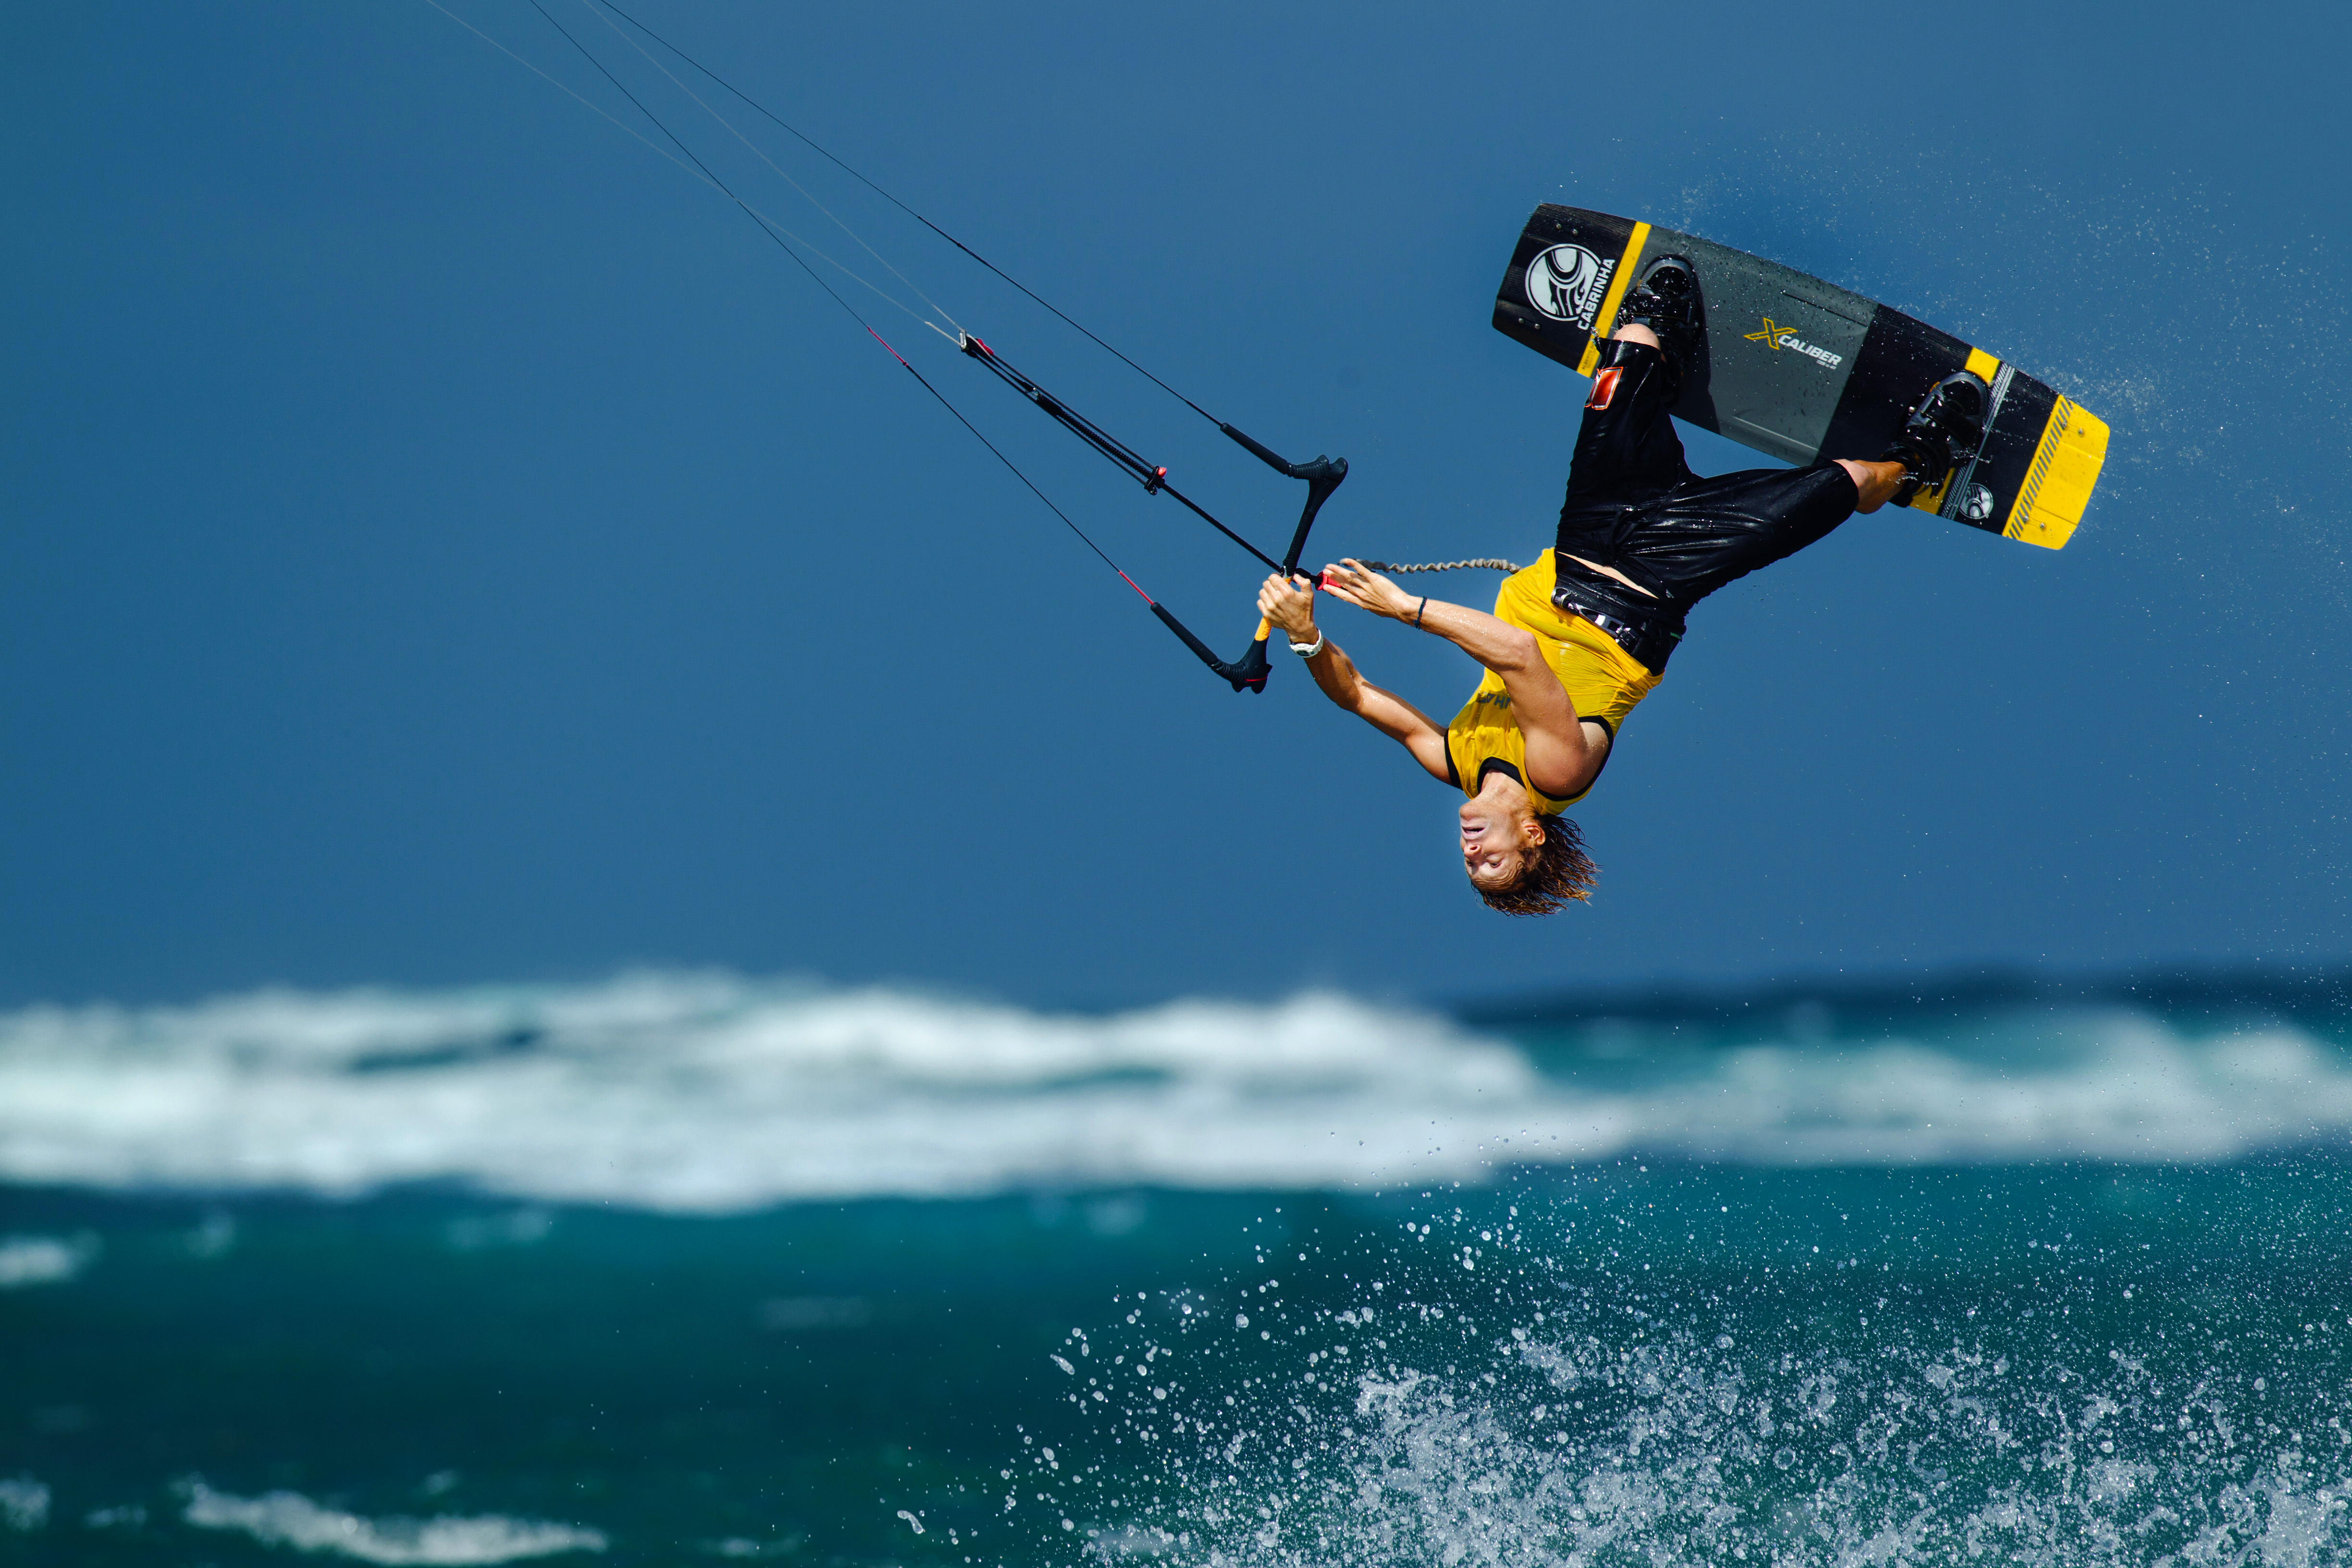 kitesurf wallpaper image - Alberto Rondina inverted on the Cabrinha Xcaliber full carbon board - kitesurfing - in resolution: Original 4896 X 3264